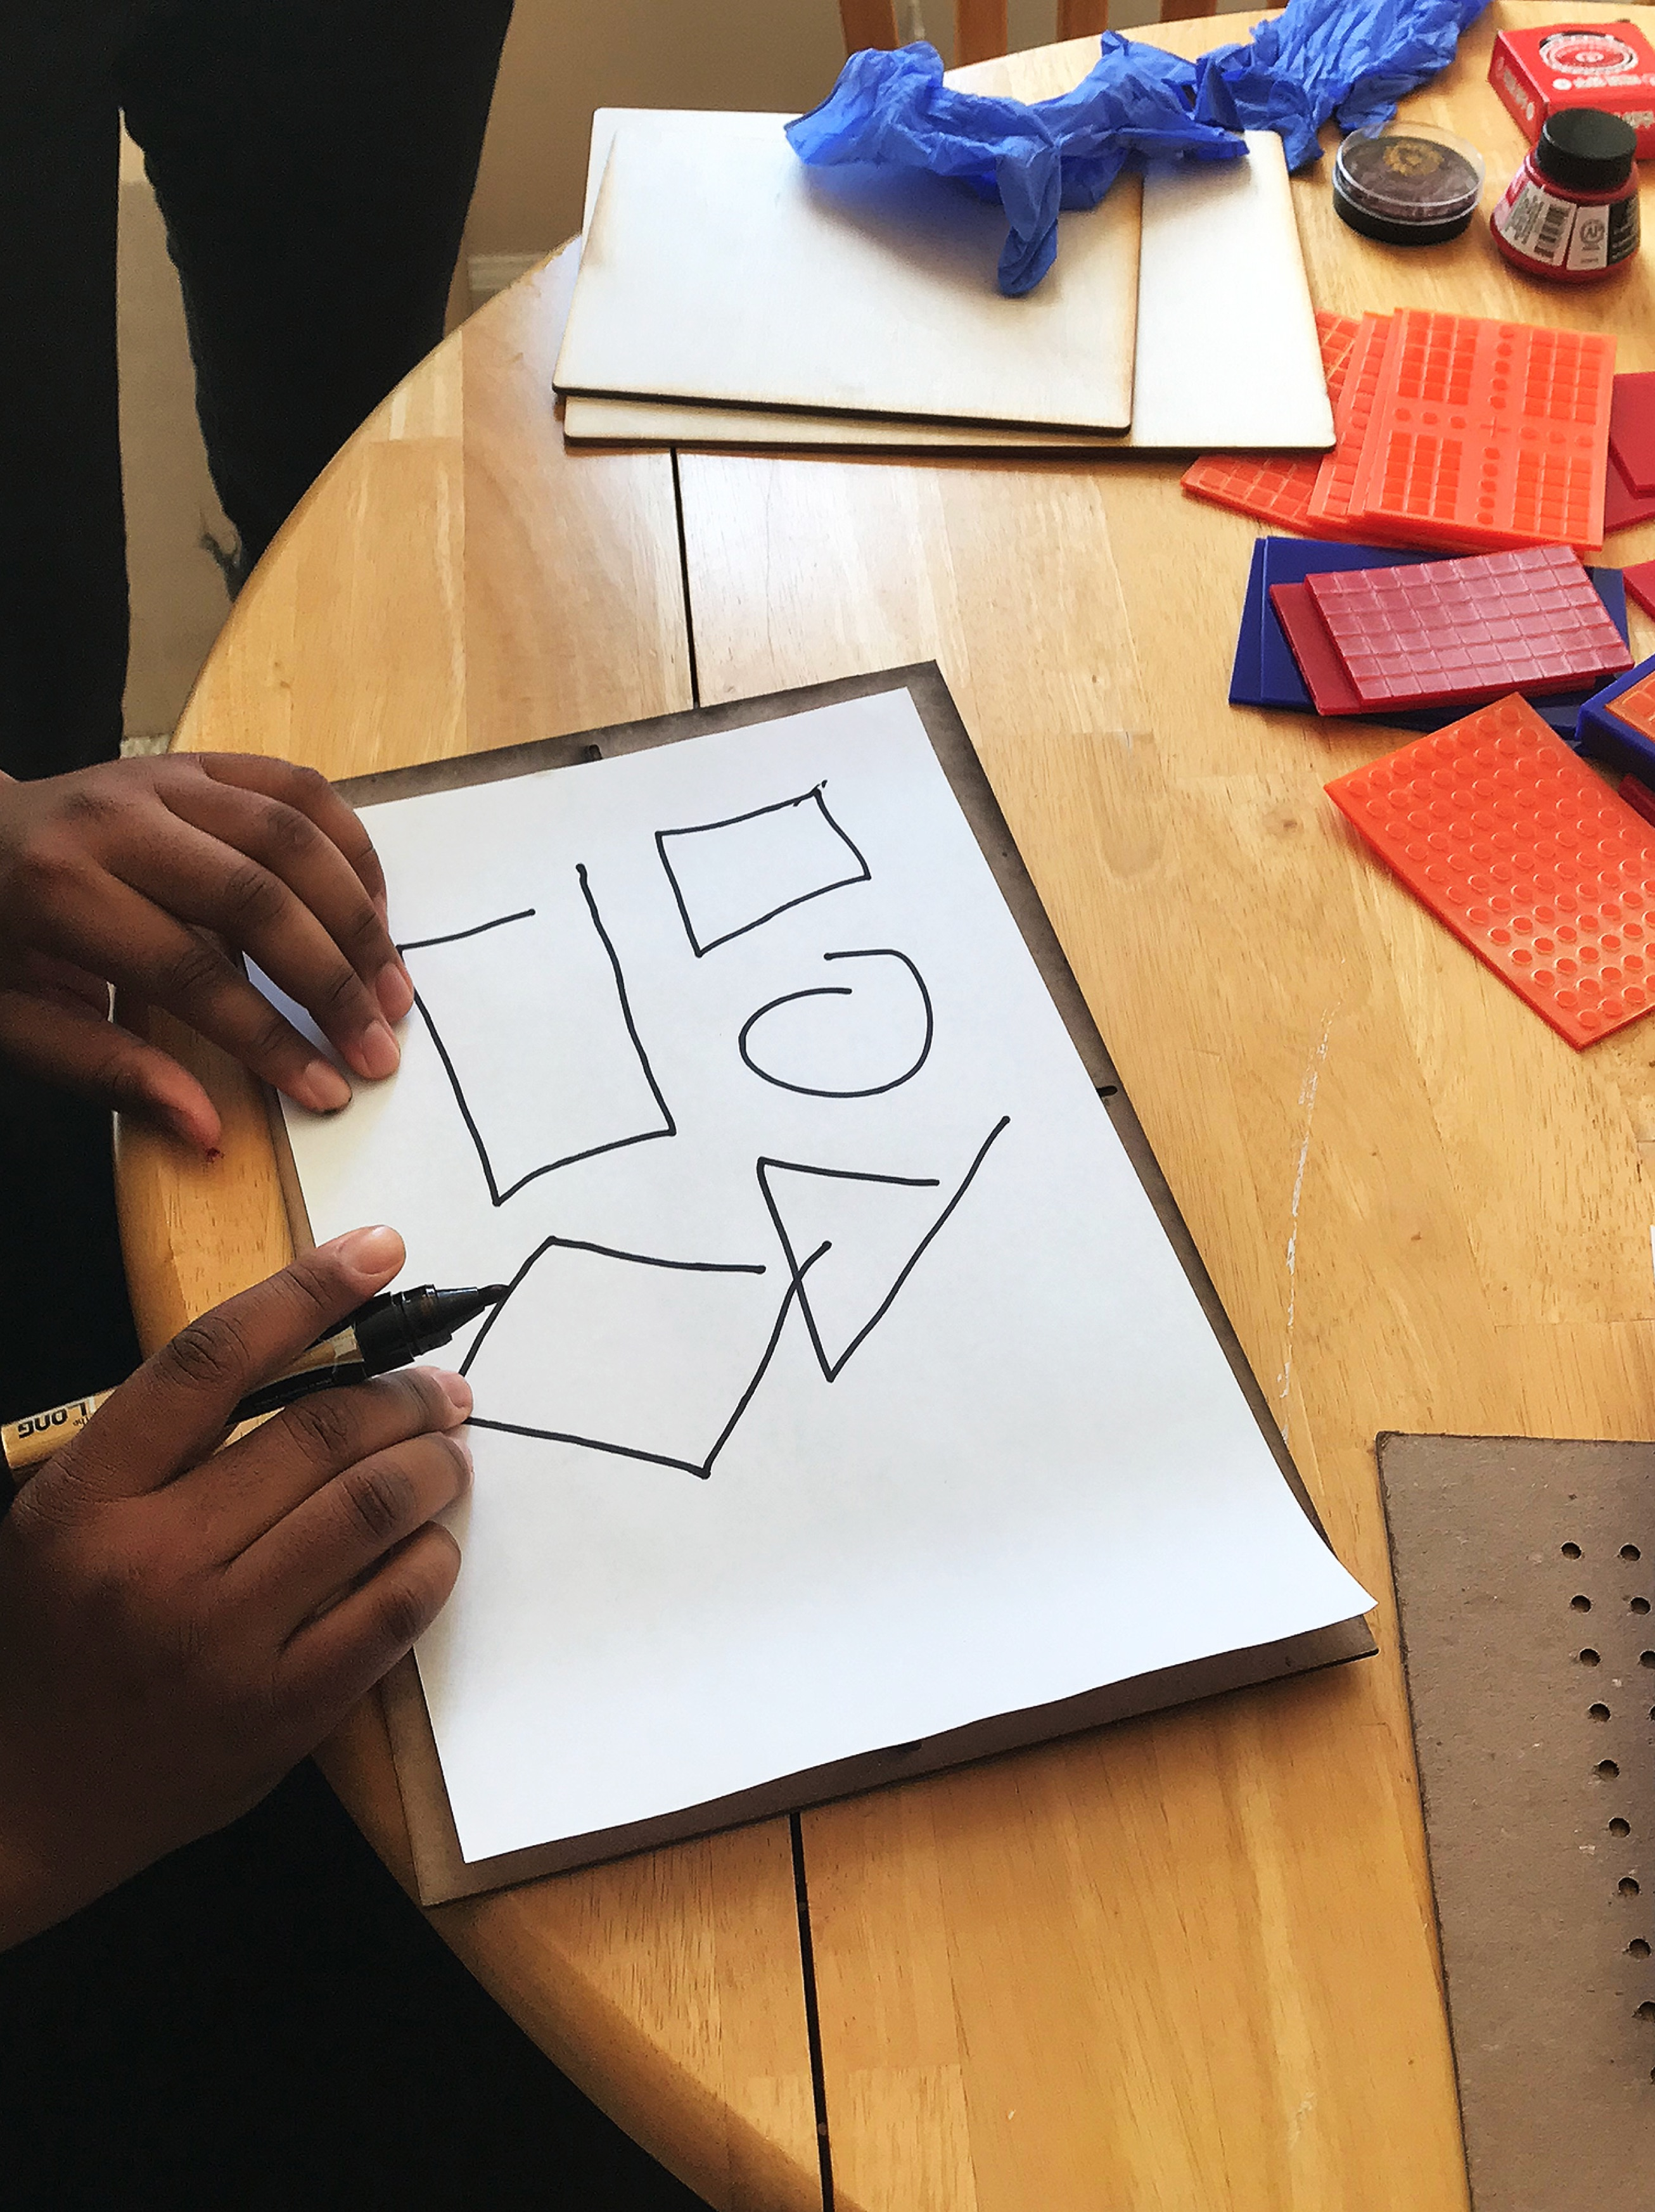 Contextual Inquiry mage showing a visually impaired participant drawing with a pen.